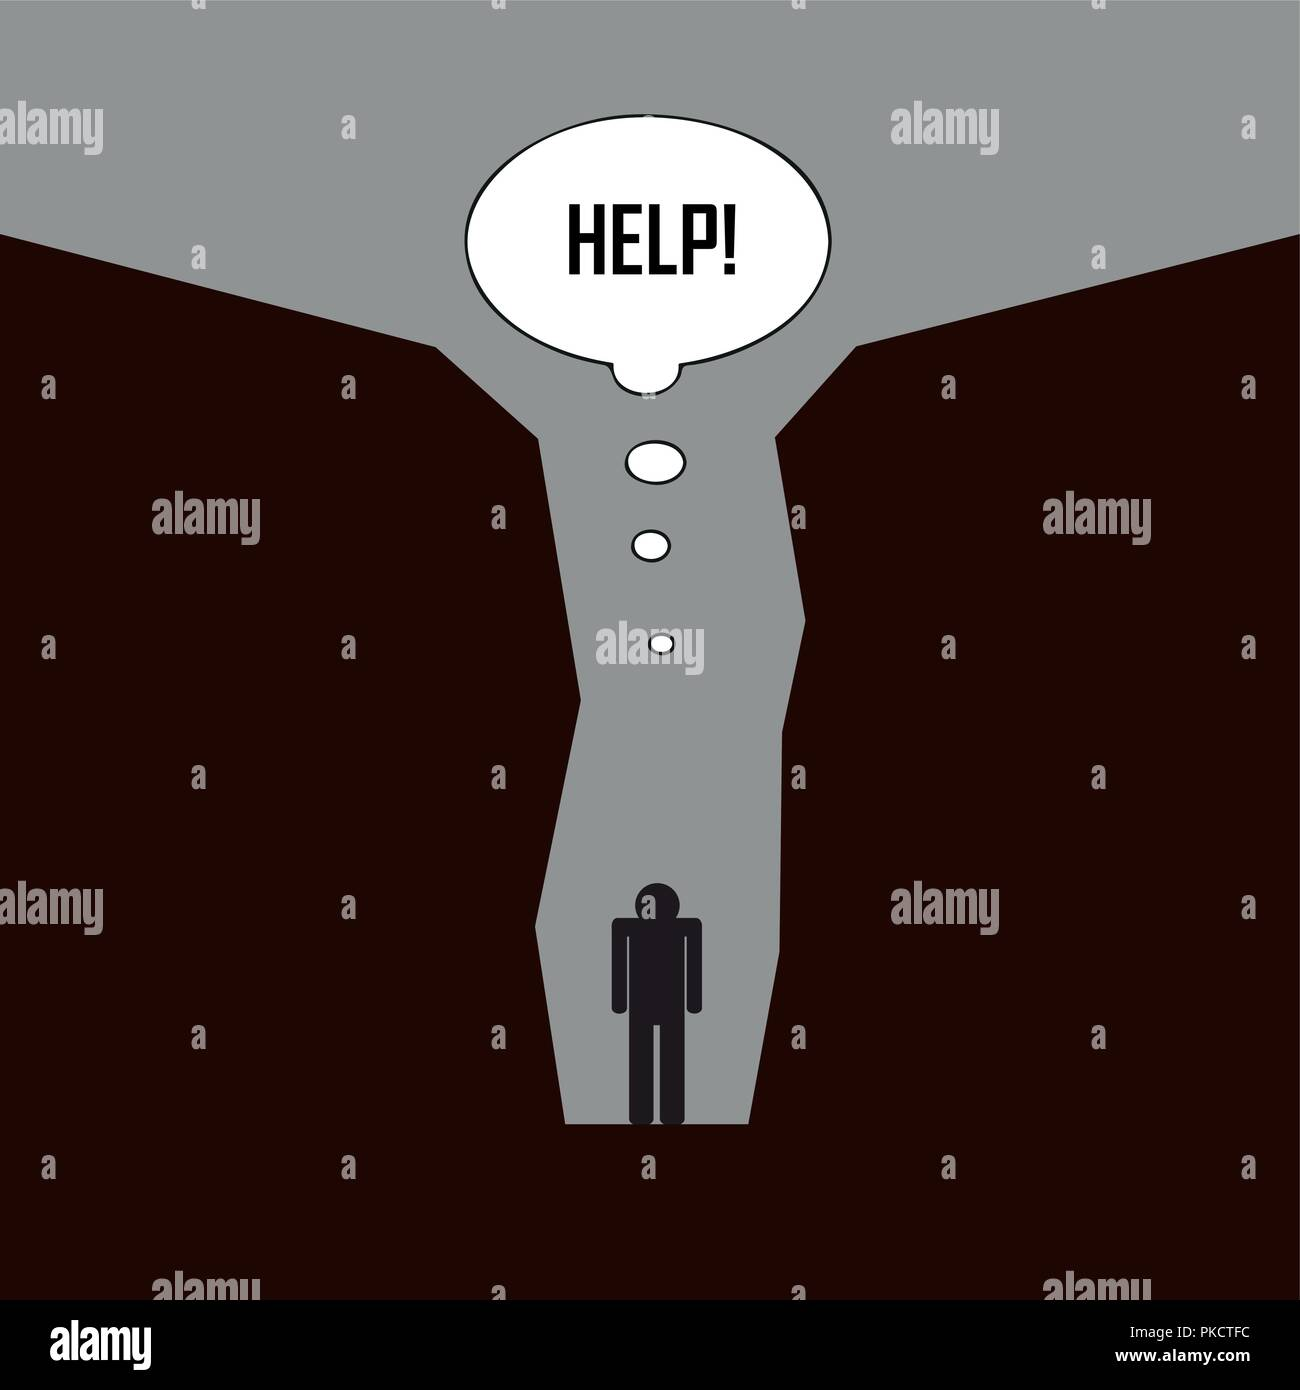 sad man standing alone inside a canyon need help pictogram vector illustration EPS10 - Stock Vector